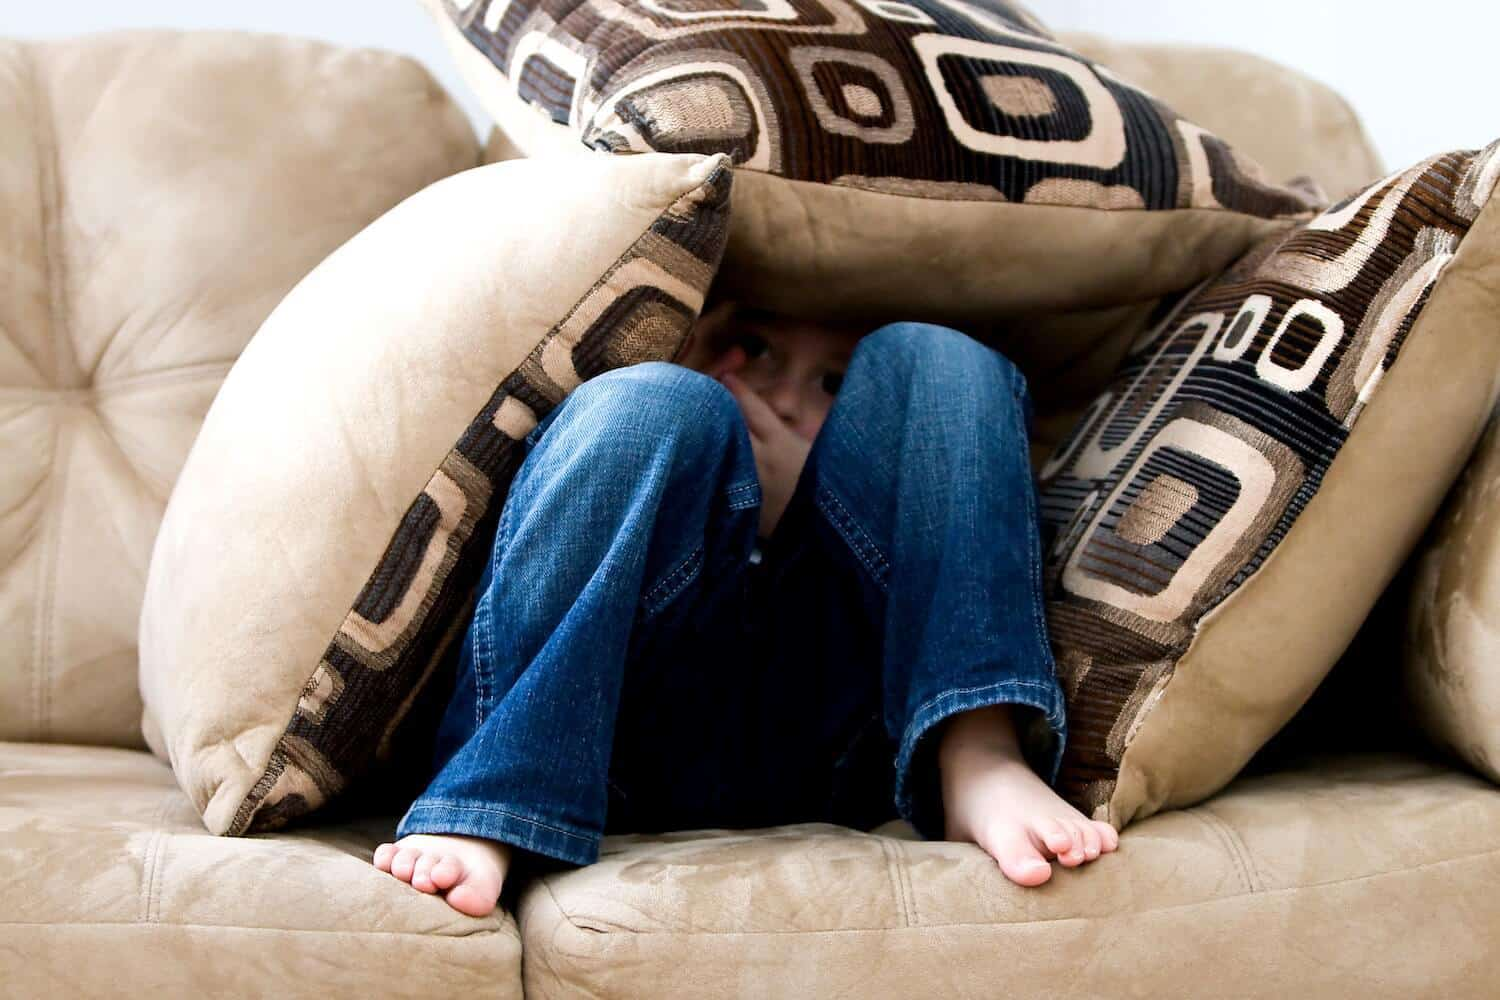 child hiding on couch in pillows